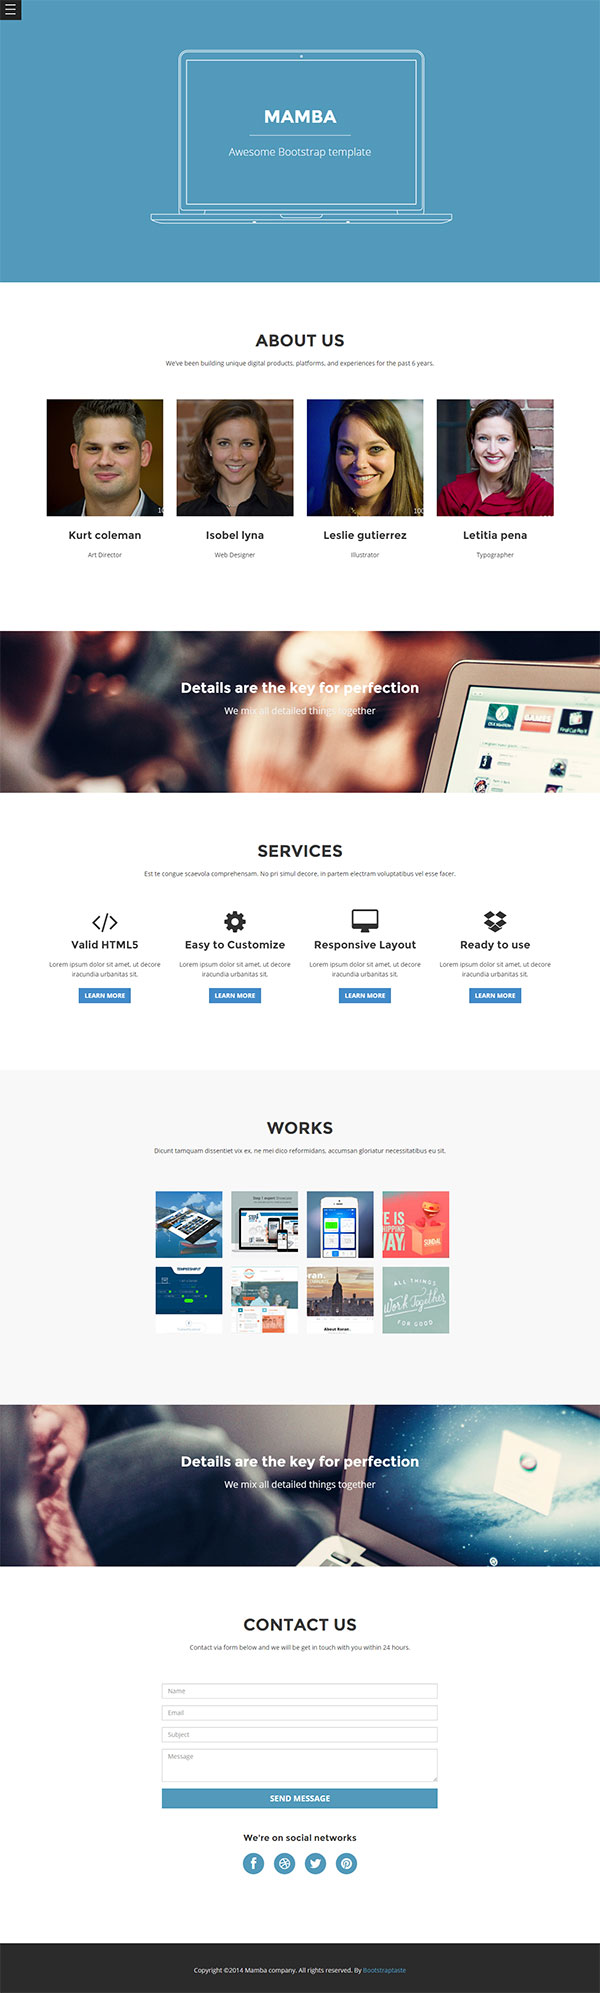 Free Mamba Bootstrap Templates   Free download bootstrap template ...